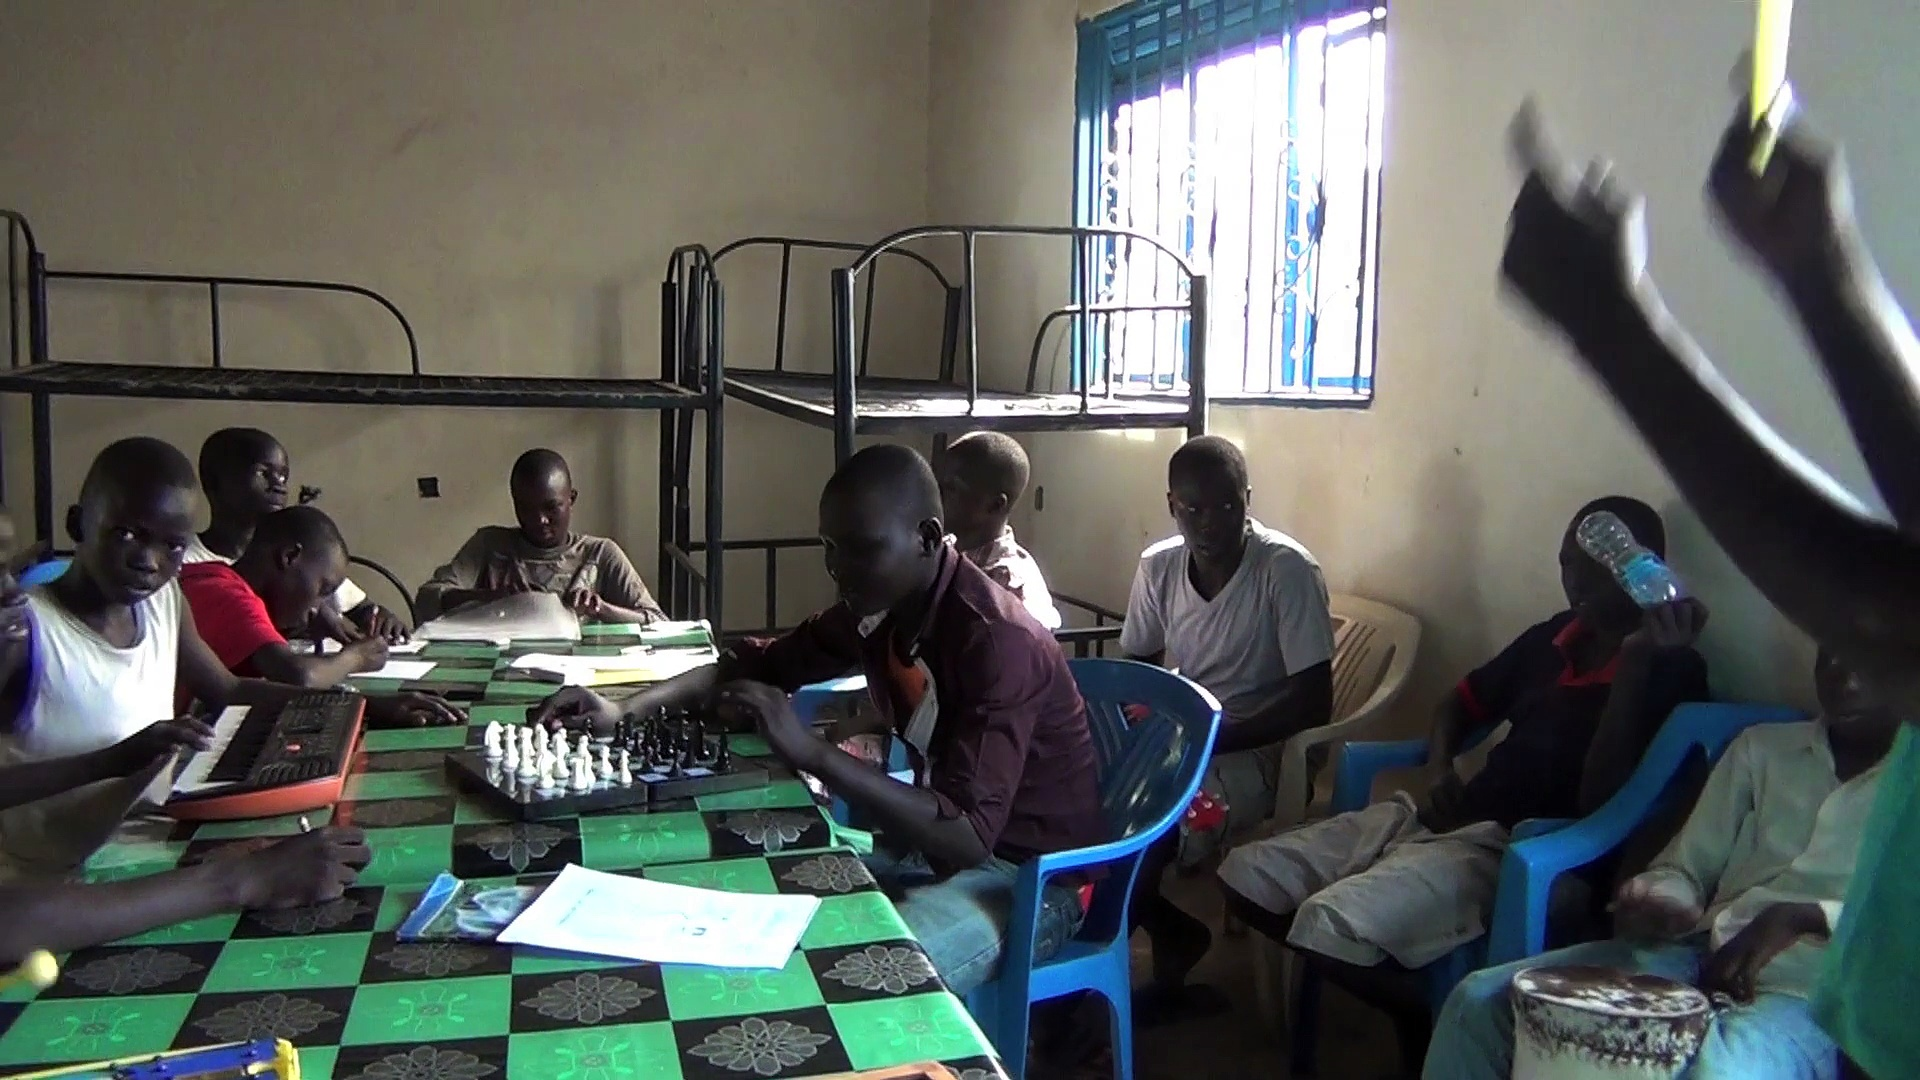 A vocational training programme in South Sudan